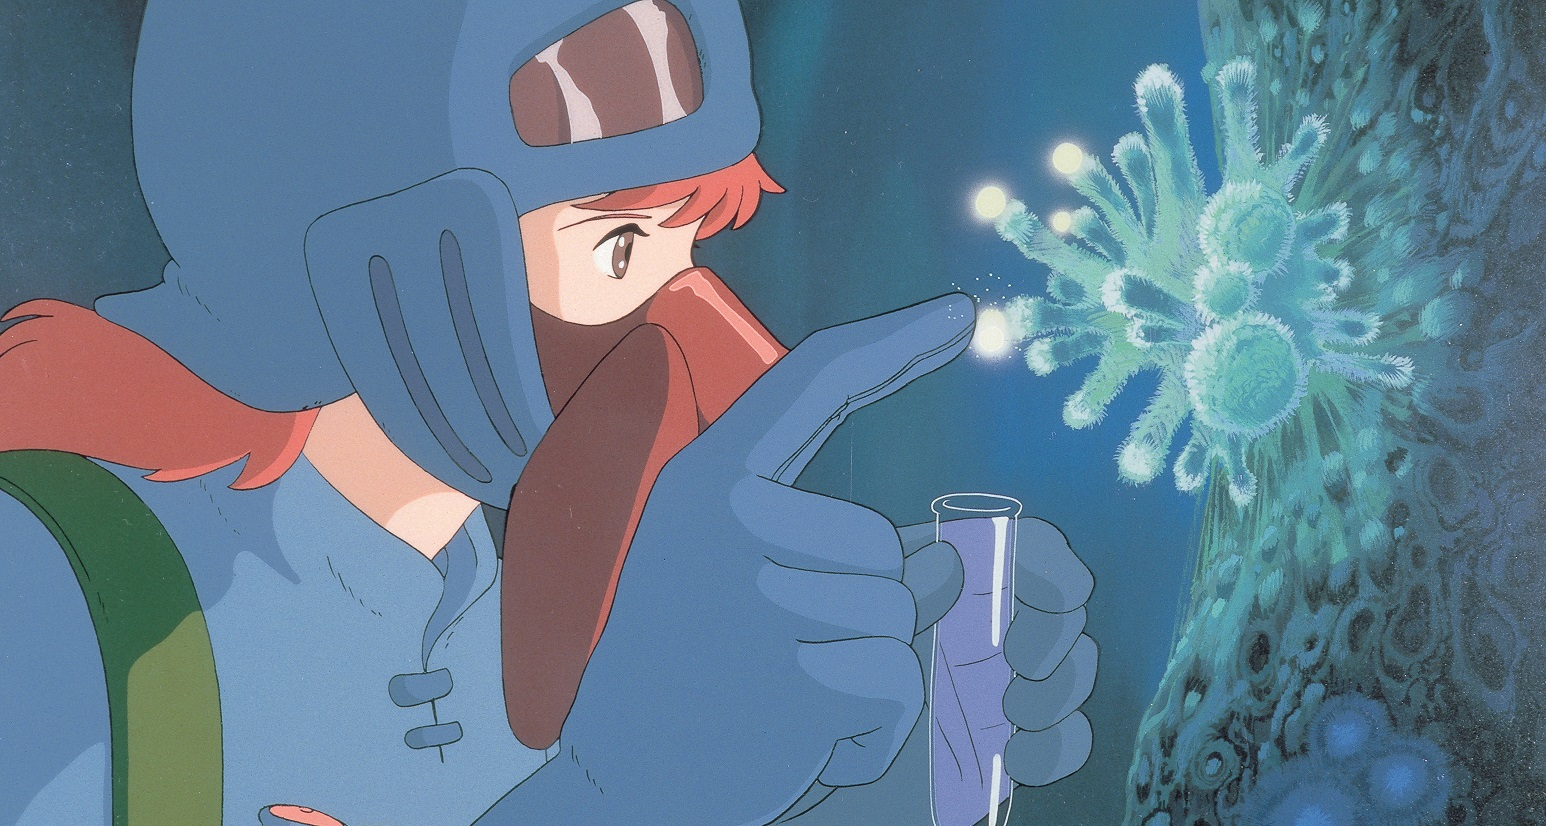 Princess Nausicaä collects a spore sample from a flowering fungus in the Toxic Forest in a scene from the 1984 Nausicaä of the Valley of the Wind theatrical anime film.